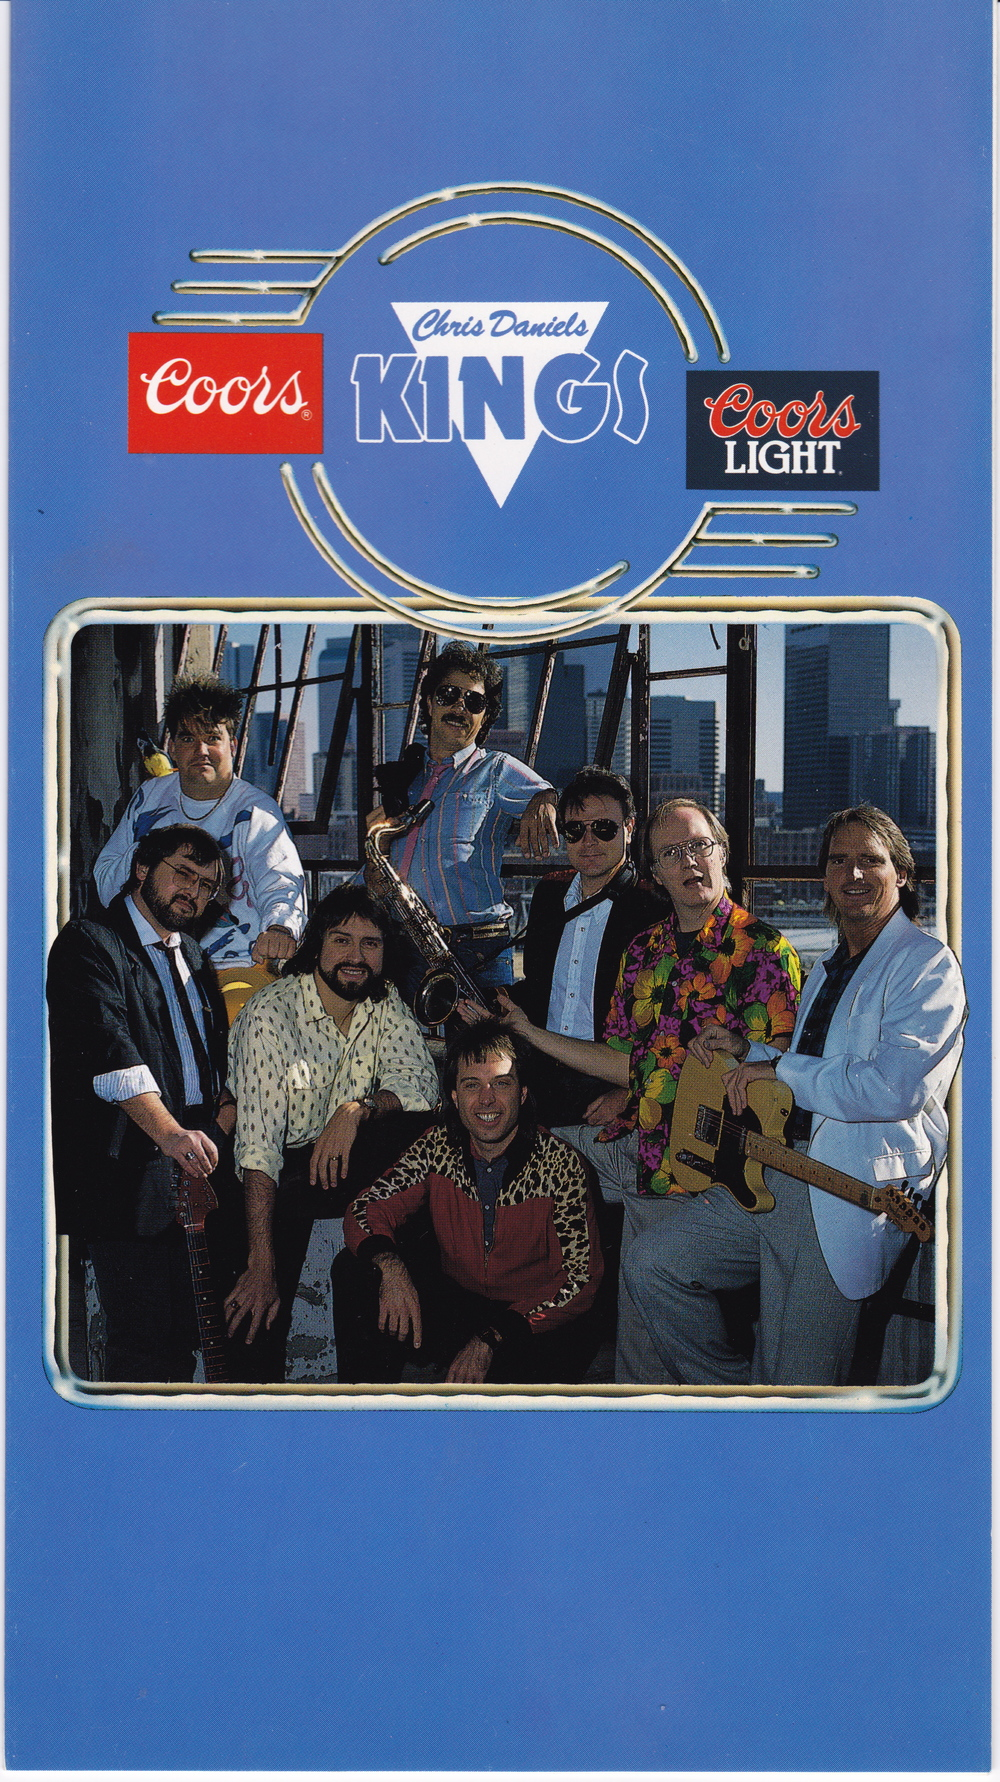 1987 CD Kings Promo_Book.jpg